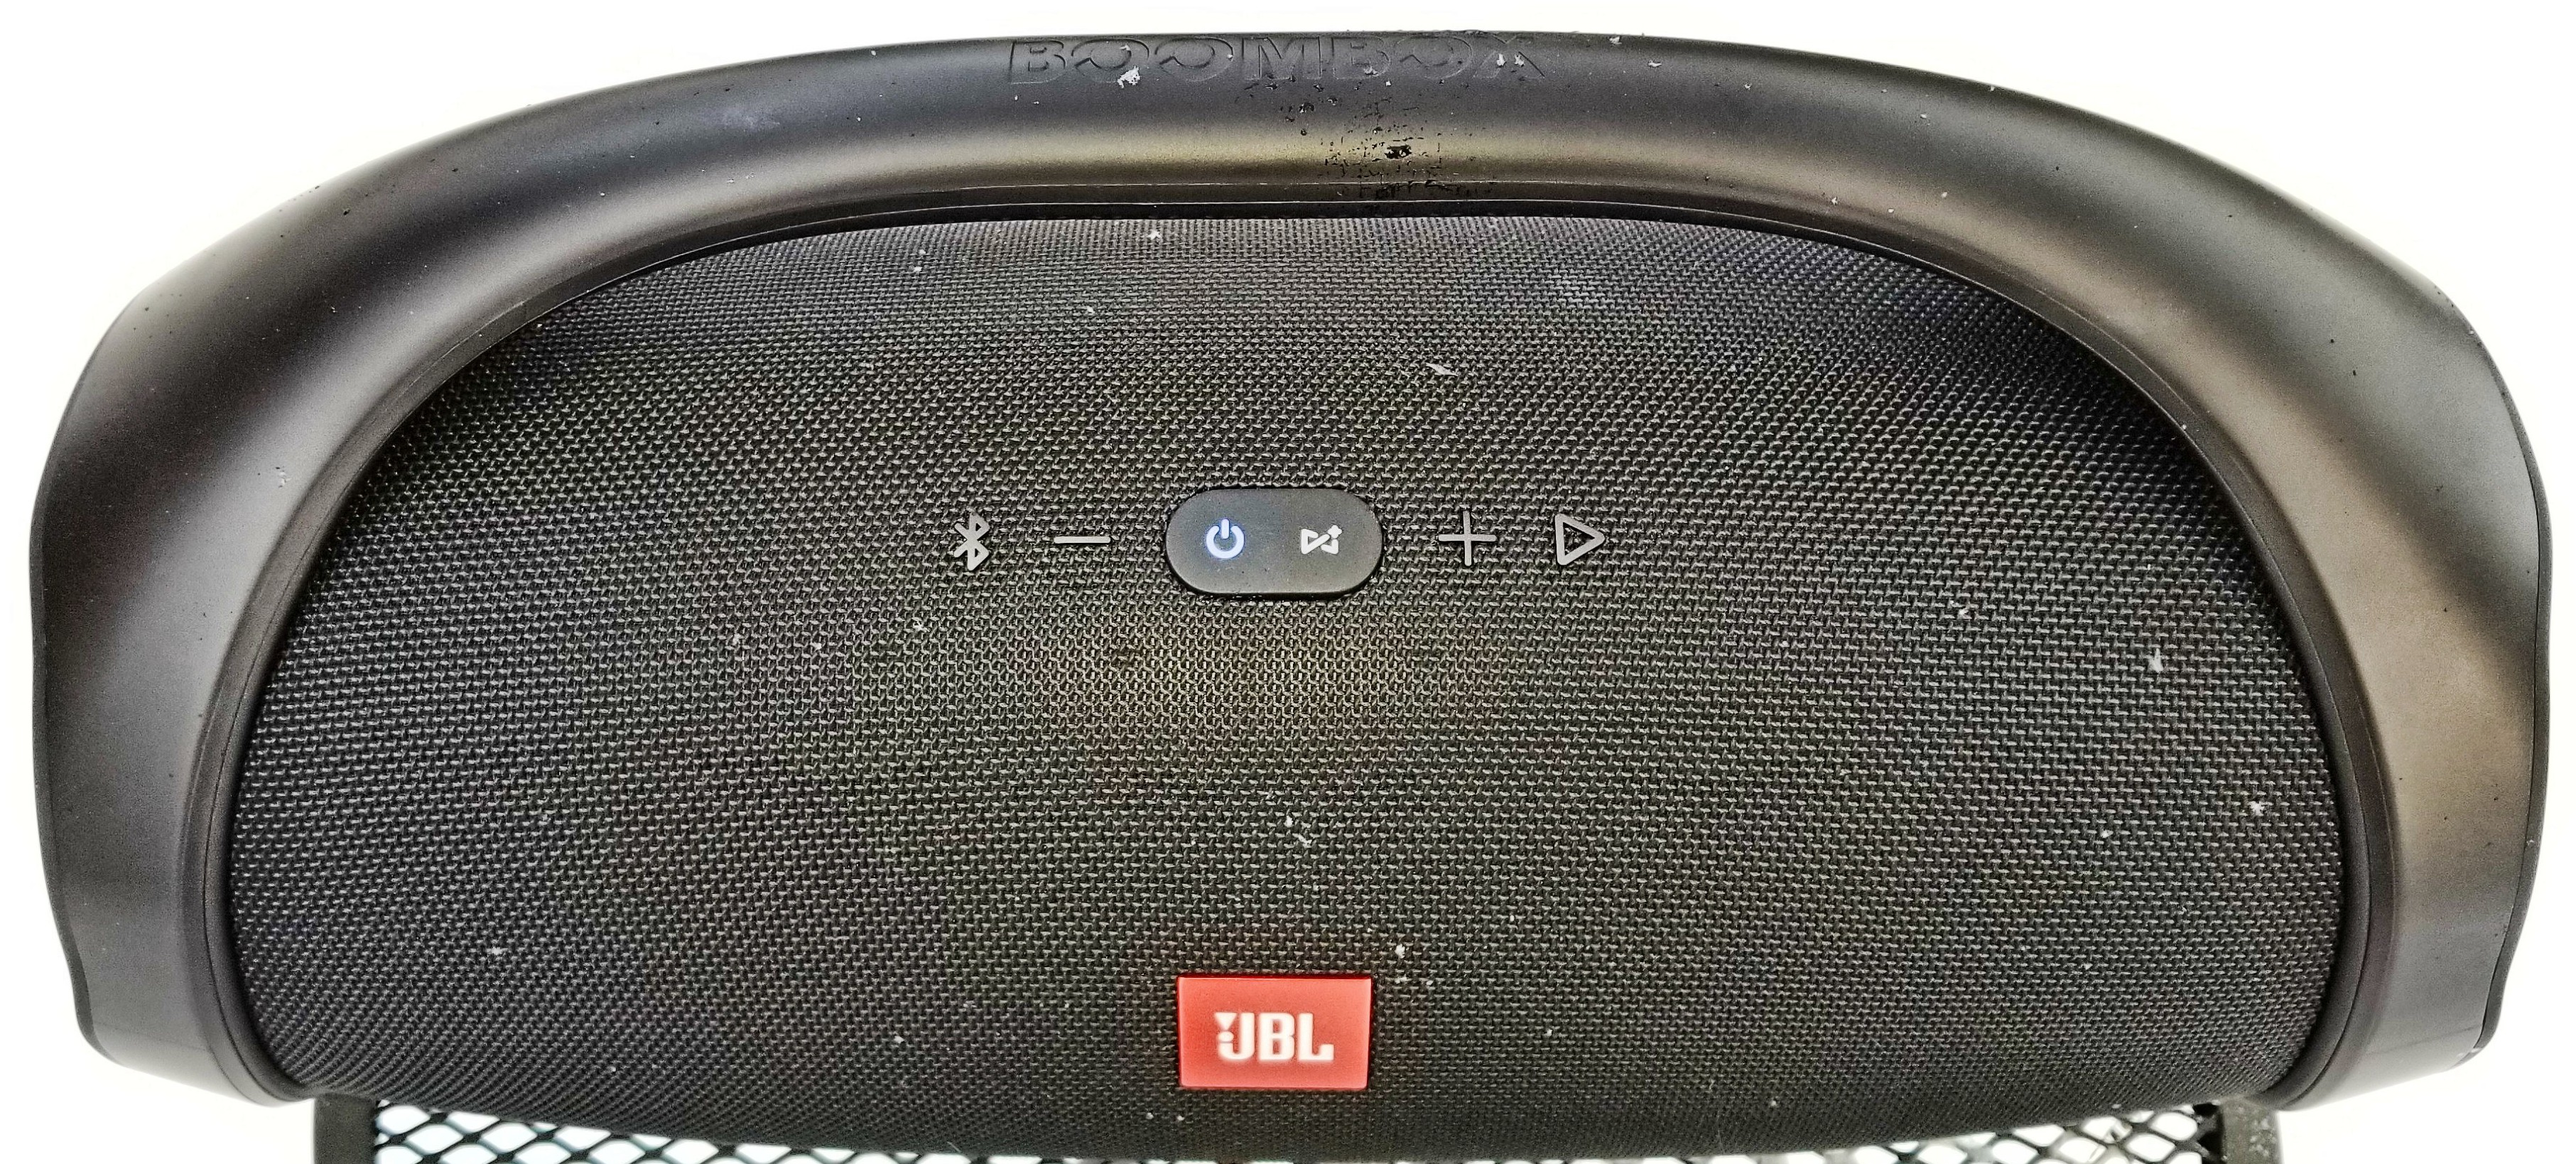 JBL Boombox - Tech Review | Busted Wallet